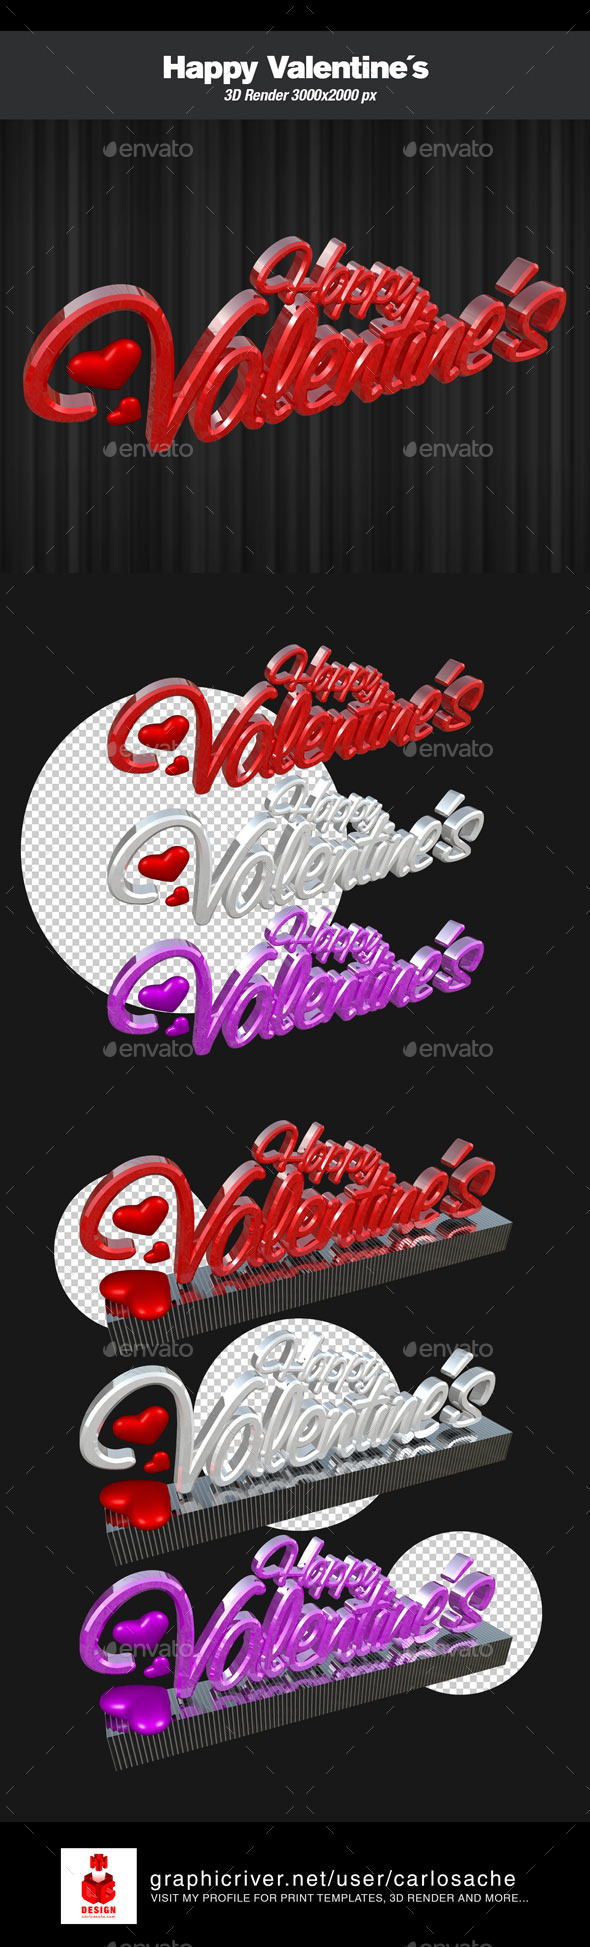 GraphicRiver Happy Valentine's 3D Render Text 9873936